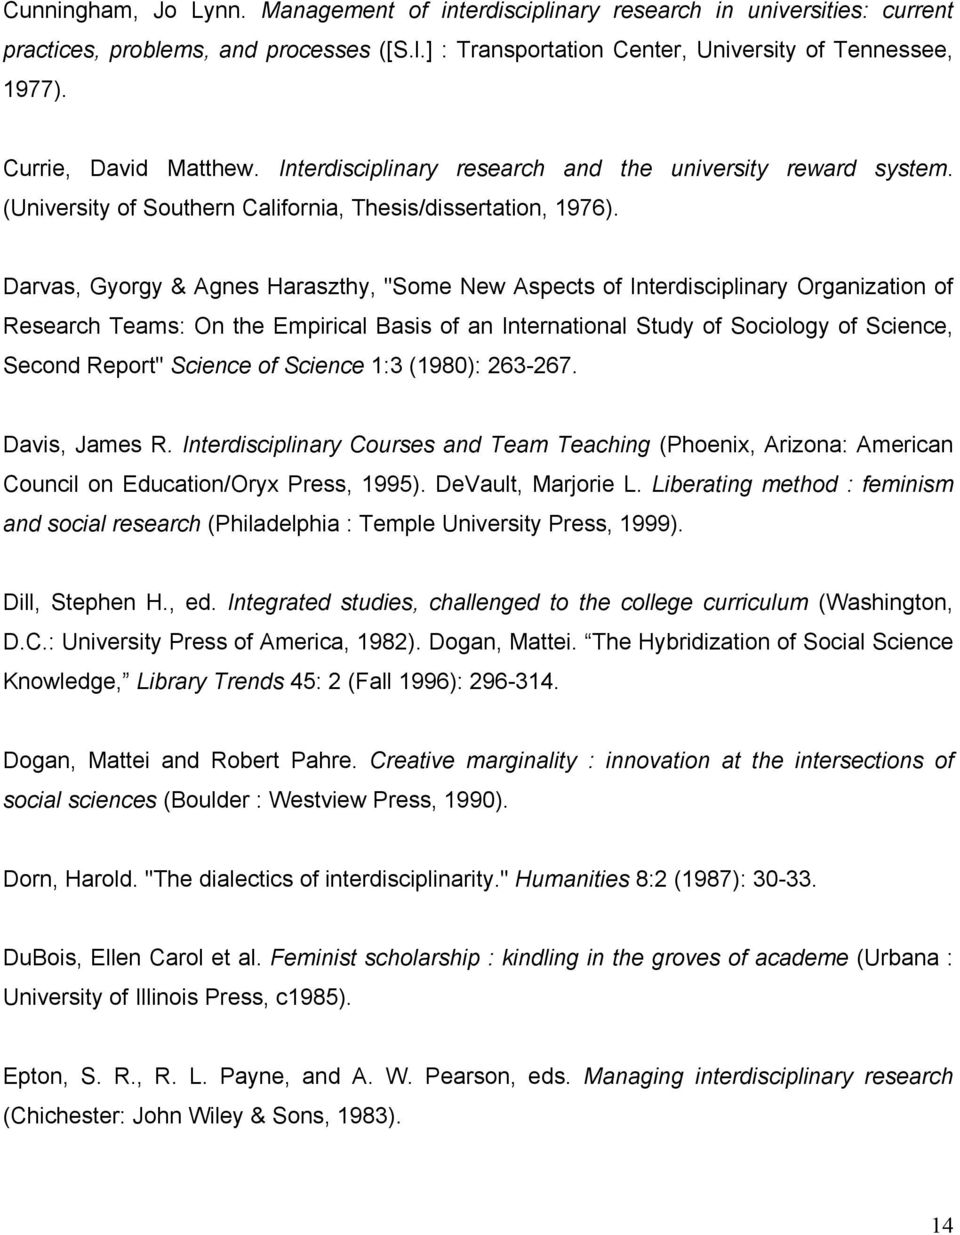 "Darvas, Gyorgy & Agnes Haraszthy, ""Some New Aspects of Interdisciplinary Organization of Research Teams: On the Empirical Basis of an International Study of Sociology of Science, Second Report"""